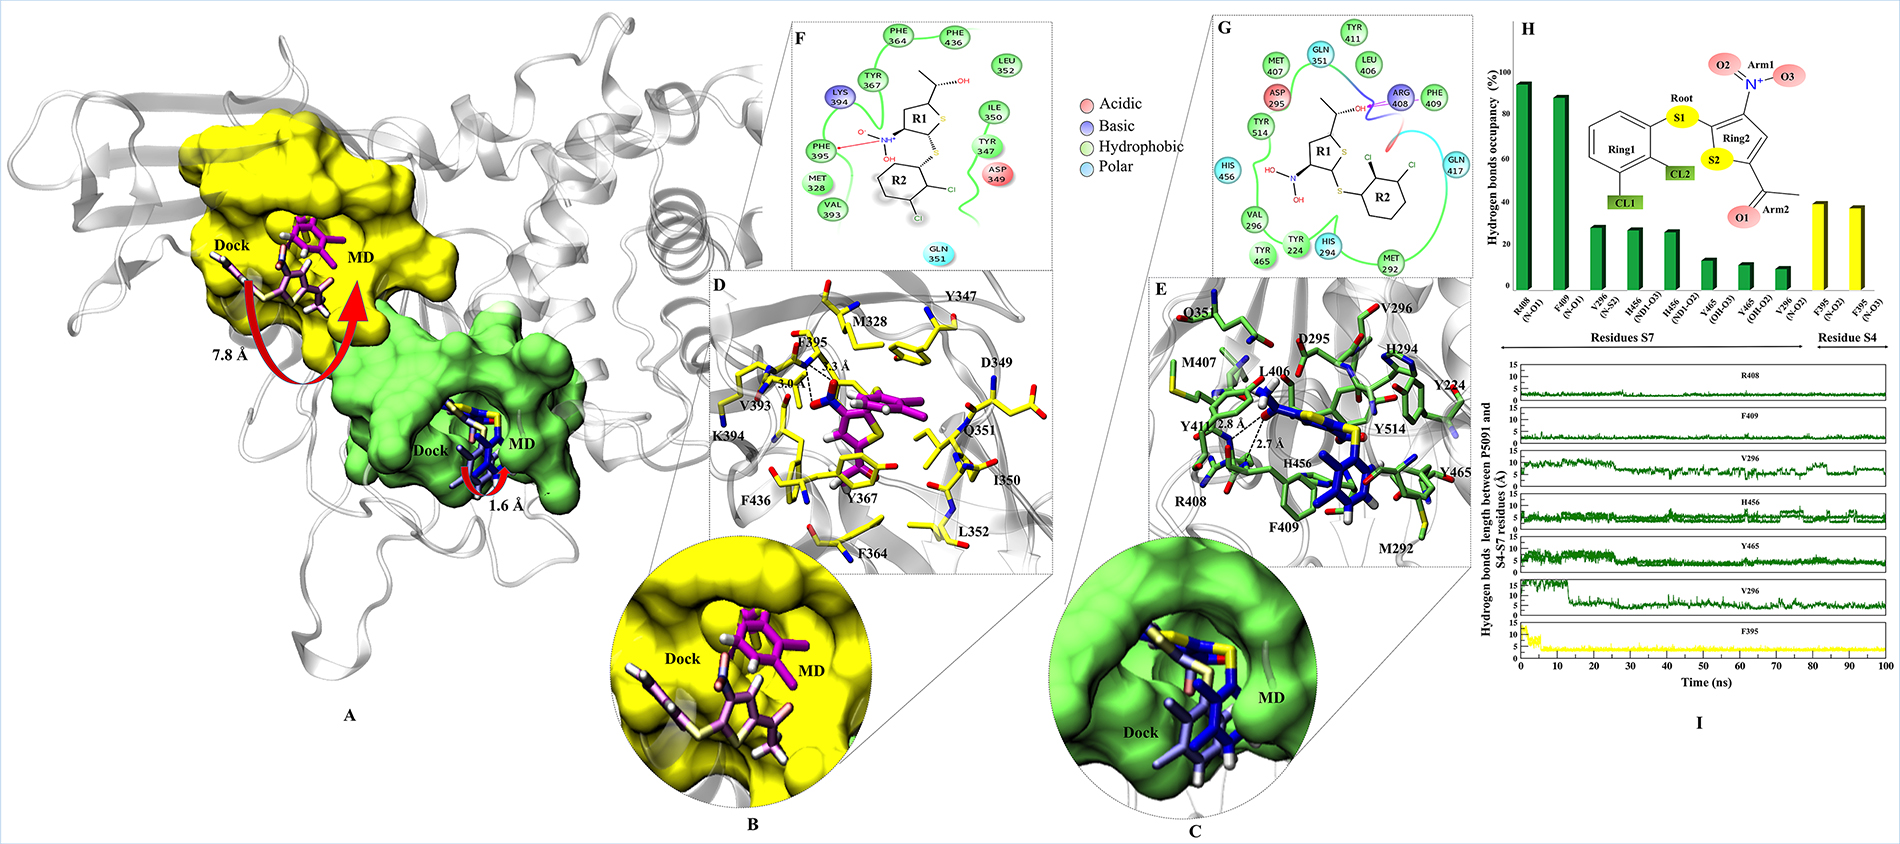 Binding modes and interaction map of P5091 at two most potential sites.